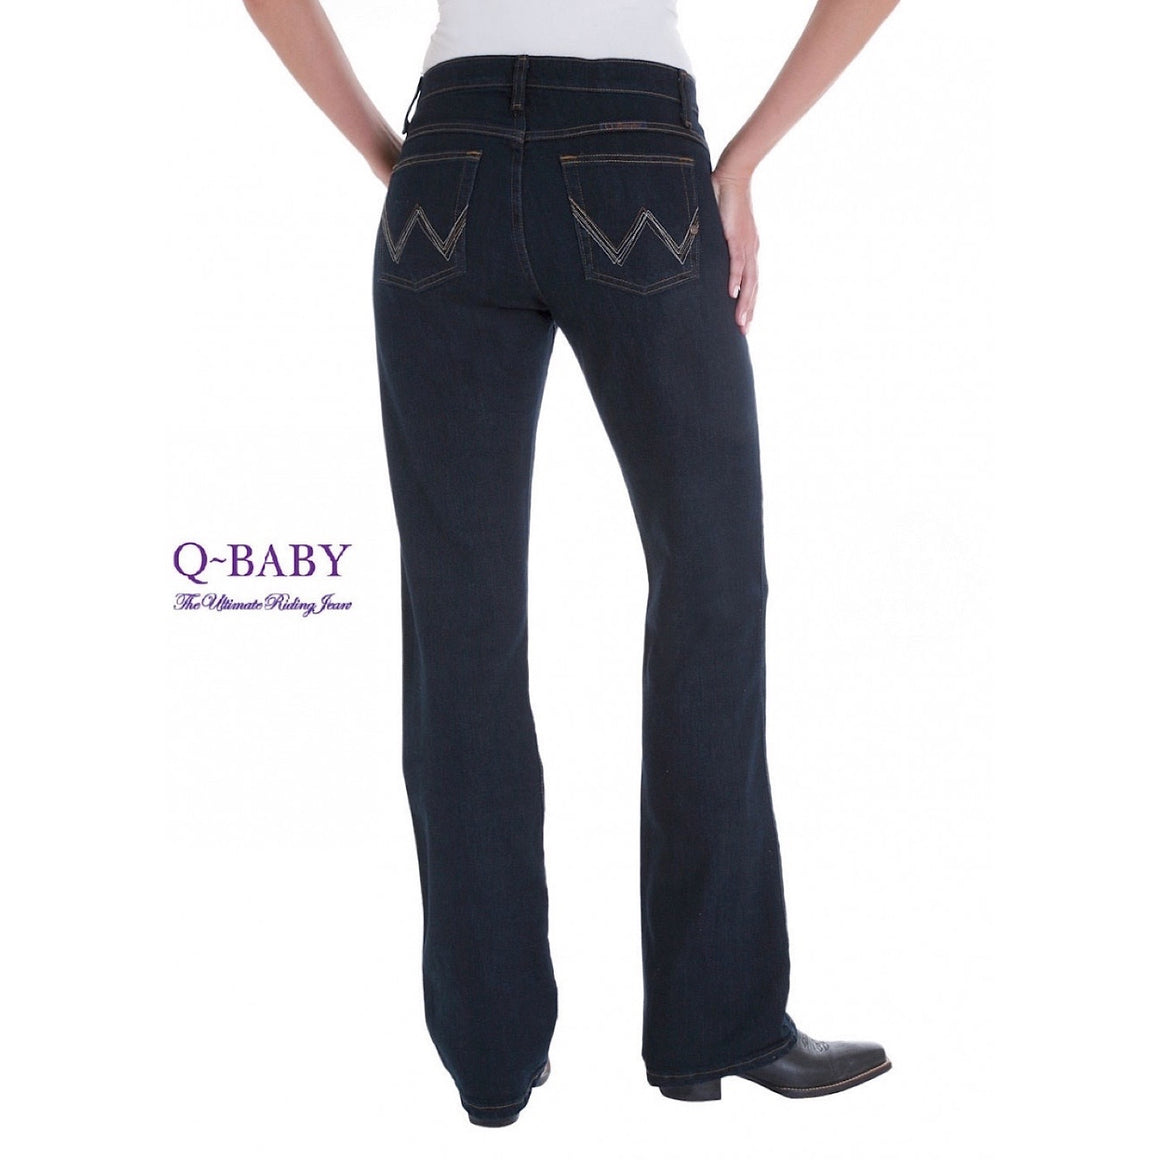 Wrangler Womens Q-Baby Ultimate Riding Jean, Dark Dynasty WRQ20DD